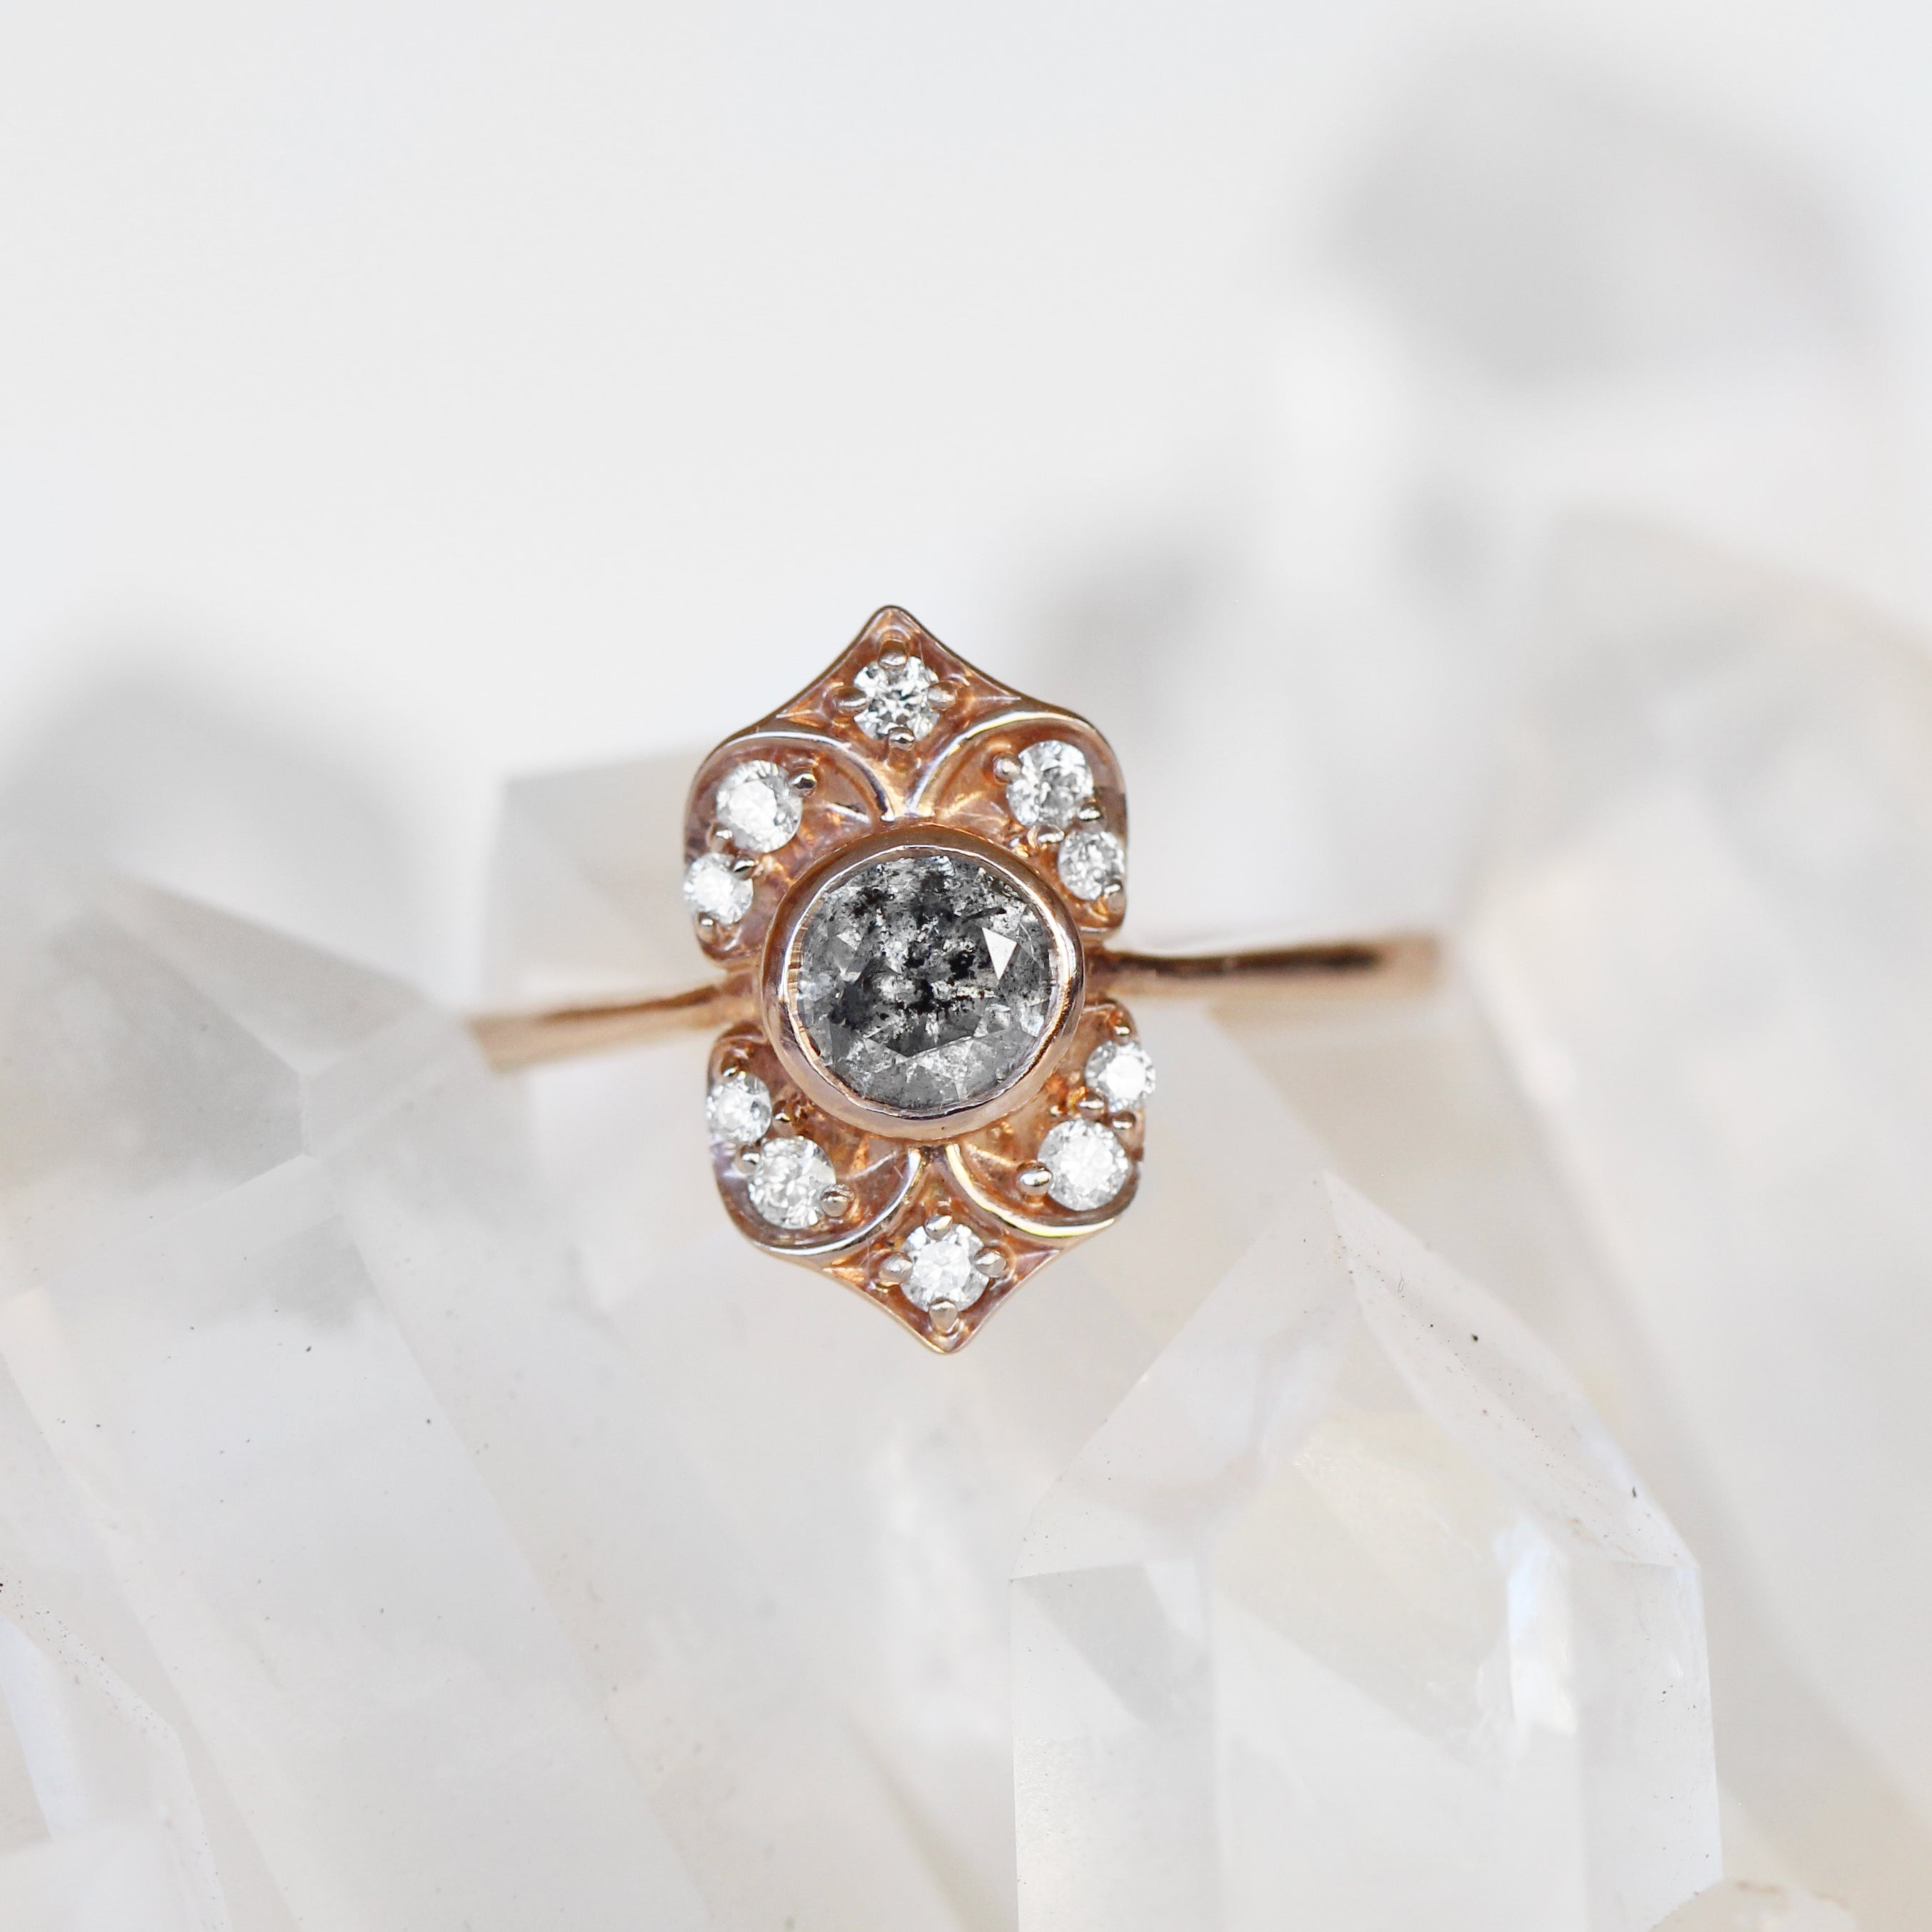 Nola Ring with Celestial Gray Diamond in 10k Rose Gold - Ready to Size and Ship - Salt & Pepper Celestial Diamond Engagement Rings and Wedding Bands  by Midwinter Co.